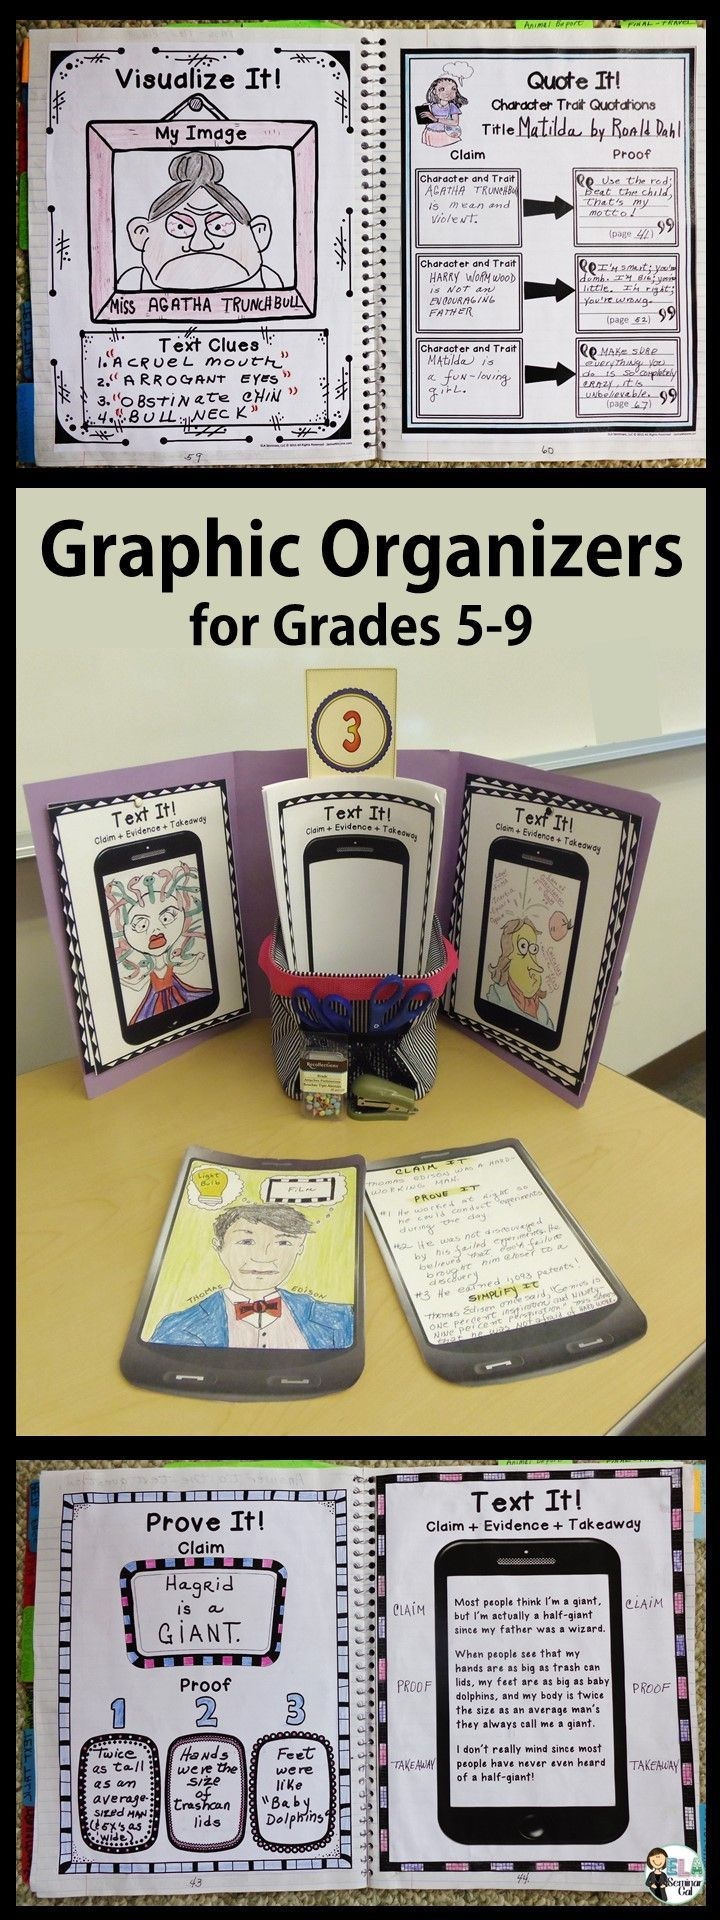 These fun organizers focus on two literacy skills: #1 Key Ideas and Details (e.g. close reading, summarizing) and #2 Integration of Knowledge  (e.g. evaluating claims, extracting evidence). #strugglingreaders ~ Available at TpT.